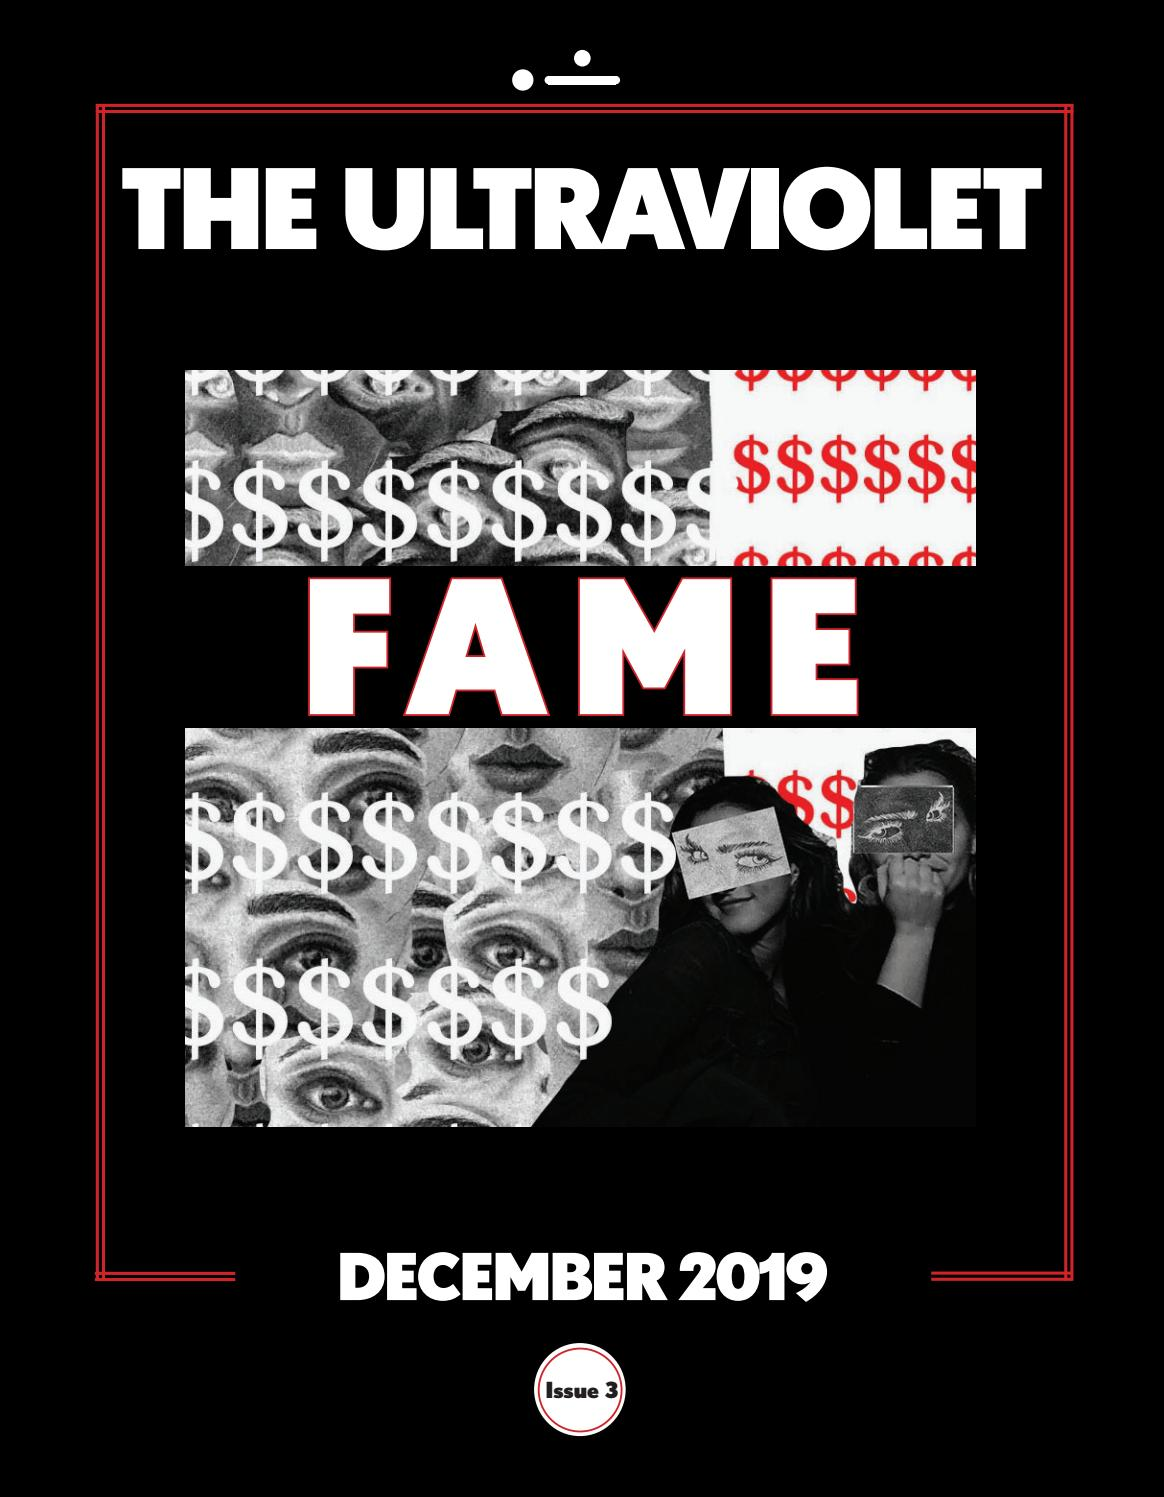 The Ultraviolet 2019 2020 Issue 3 By Theultraviolet Issuu